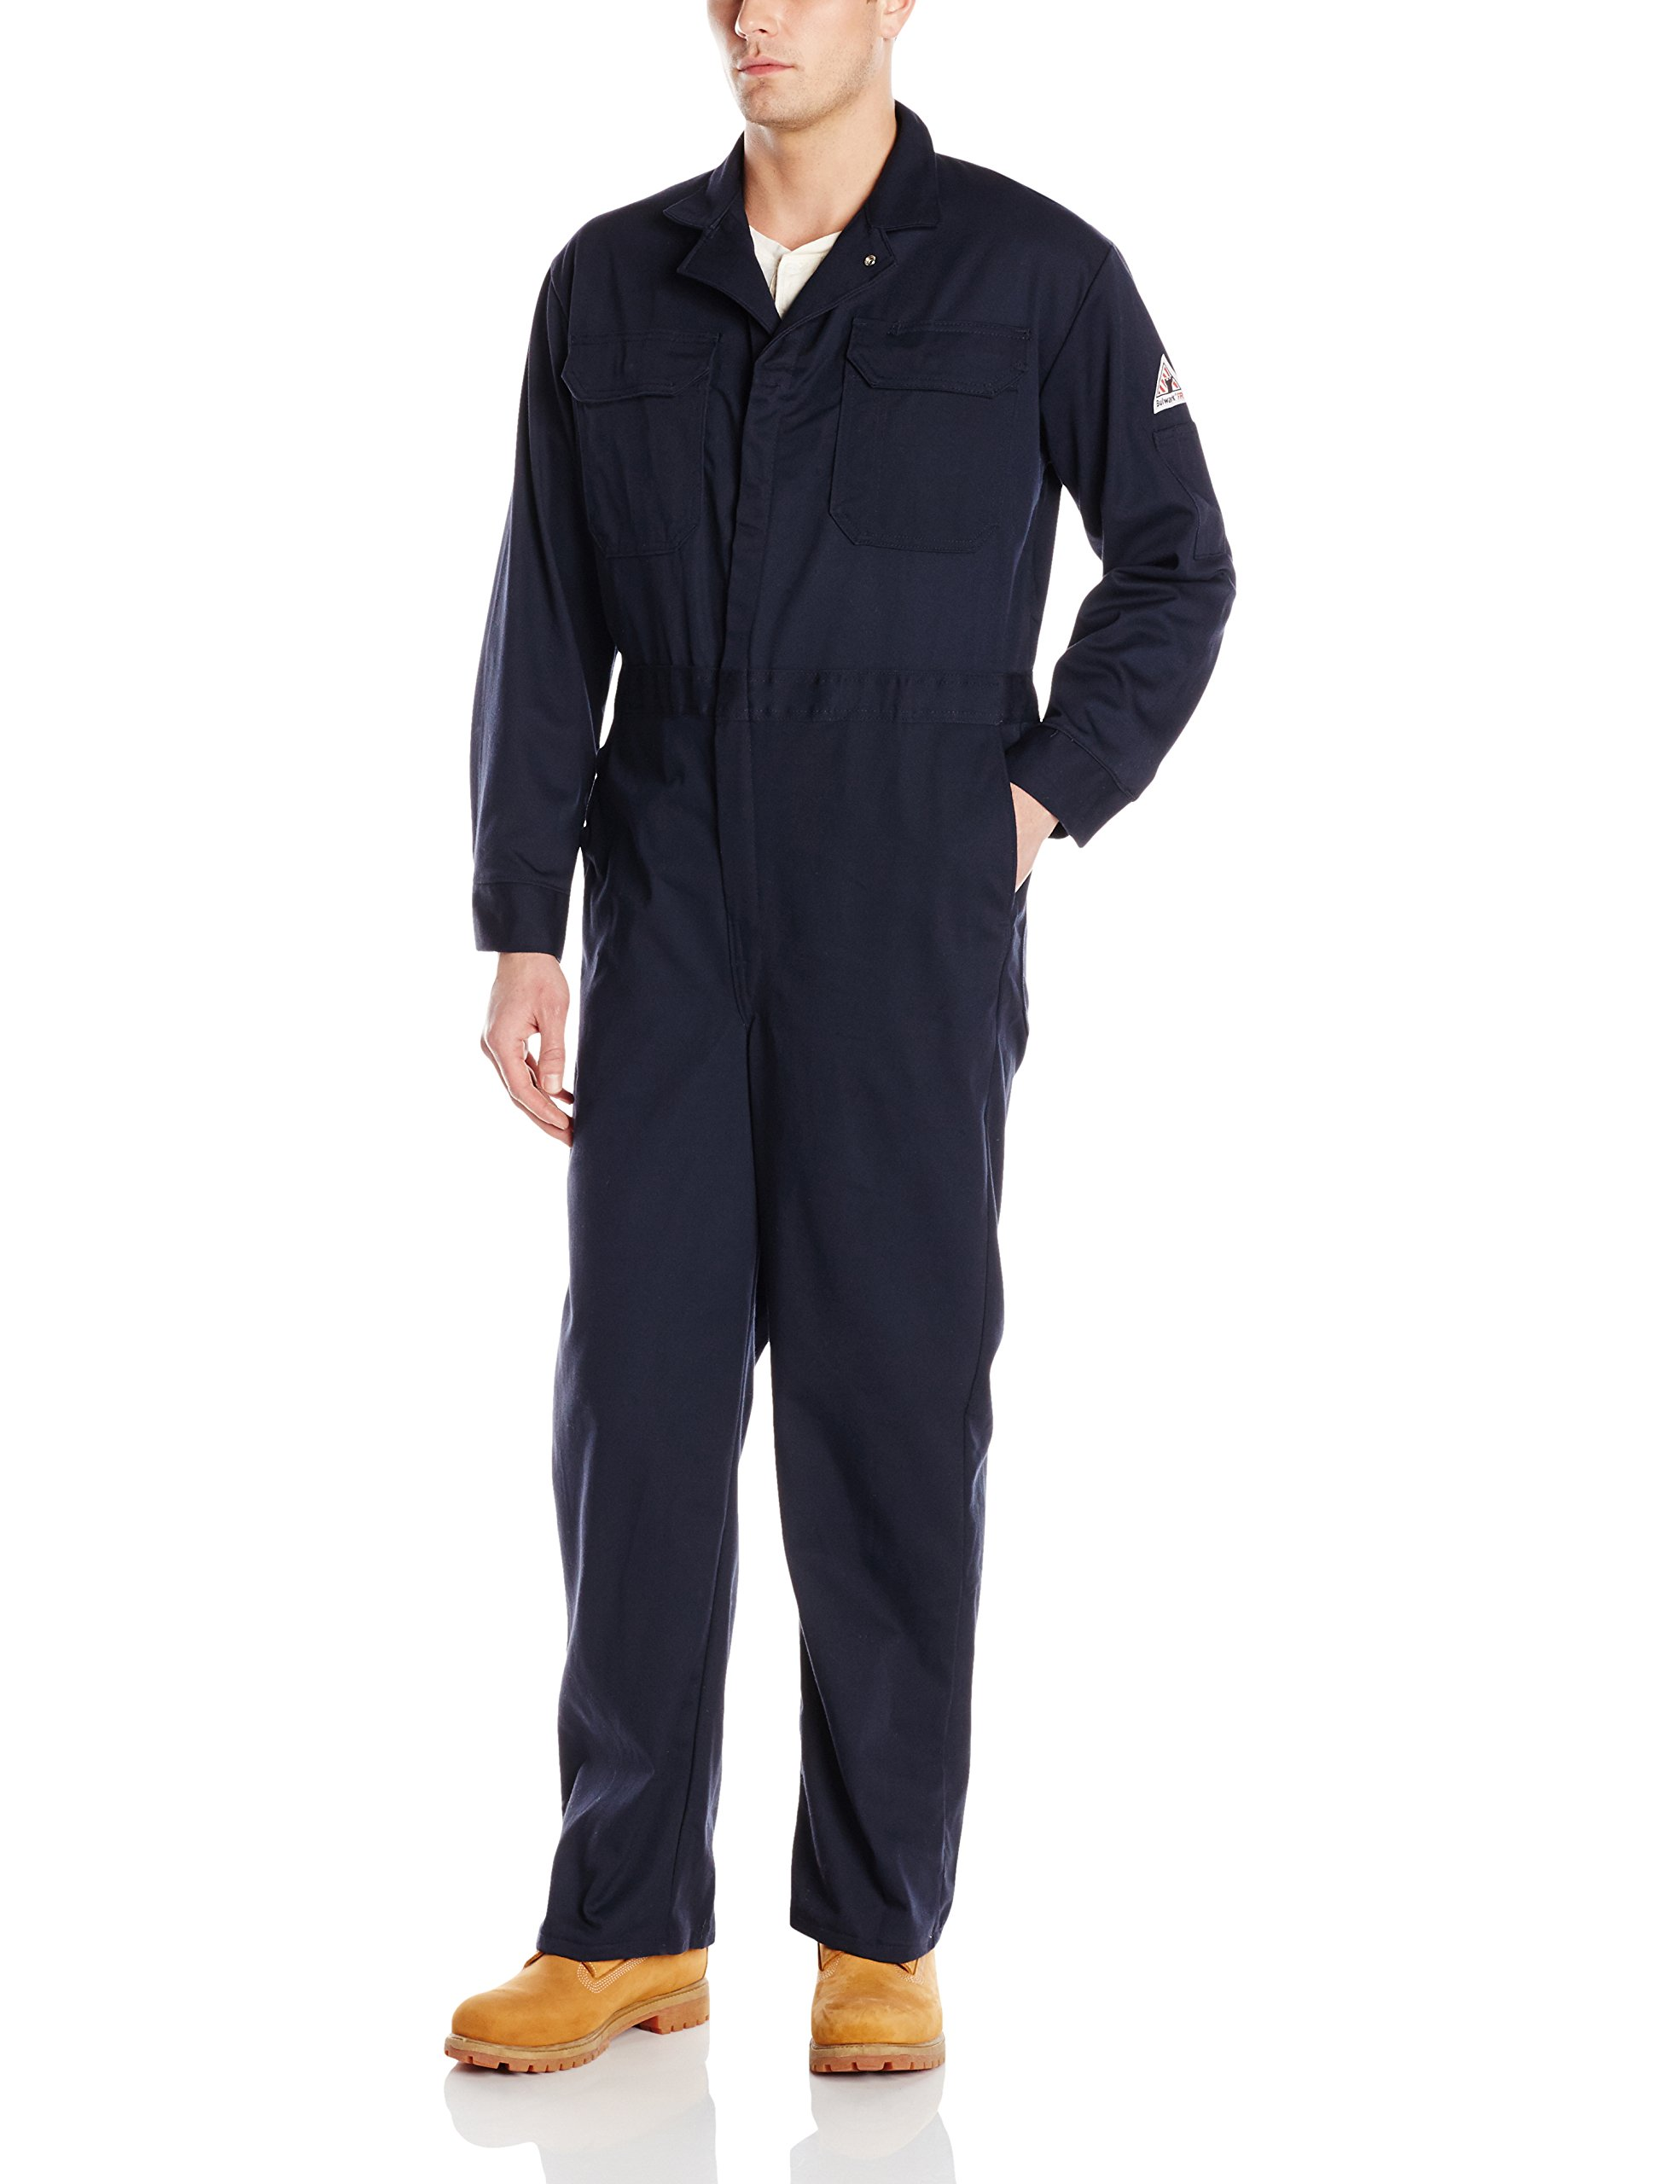 Bulwark Flame Resistant 9 oz Twill Cotton Deluxe Coverall with Concealed Snap Cuff, Navy, 60